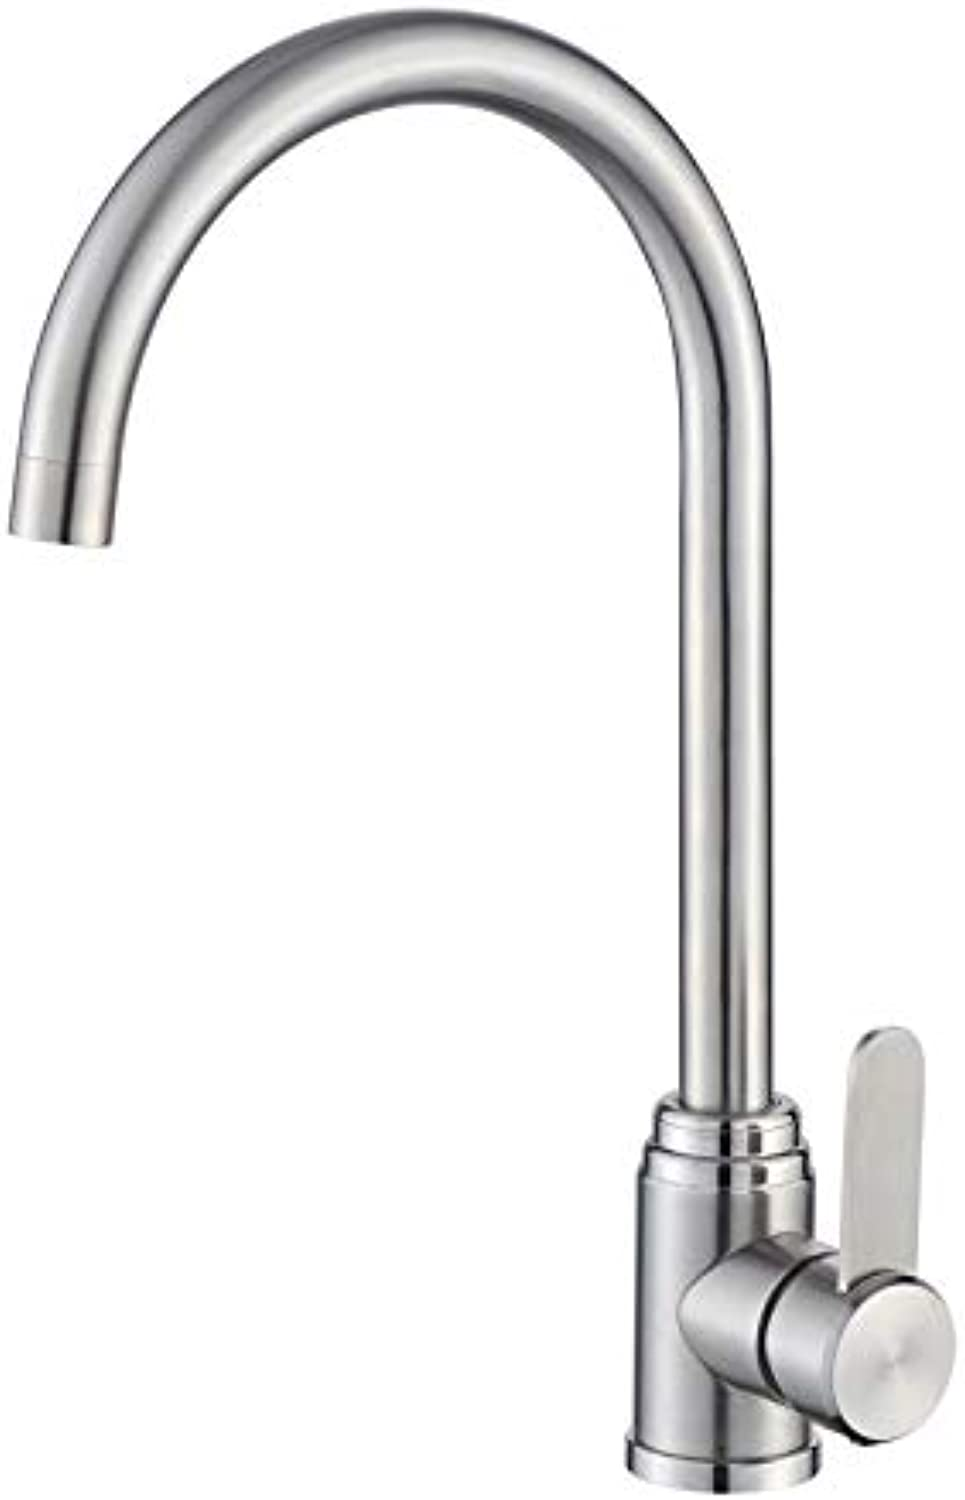 Zwj-song Kitchen Cold and hot Water Faucet Kitchen Brass redary Nozzle Traditional Double Lever Single Handle Kitchen Sink redary Nozzle Double Nozzle Double Lever 317 Stainless Steel Mixer